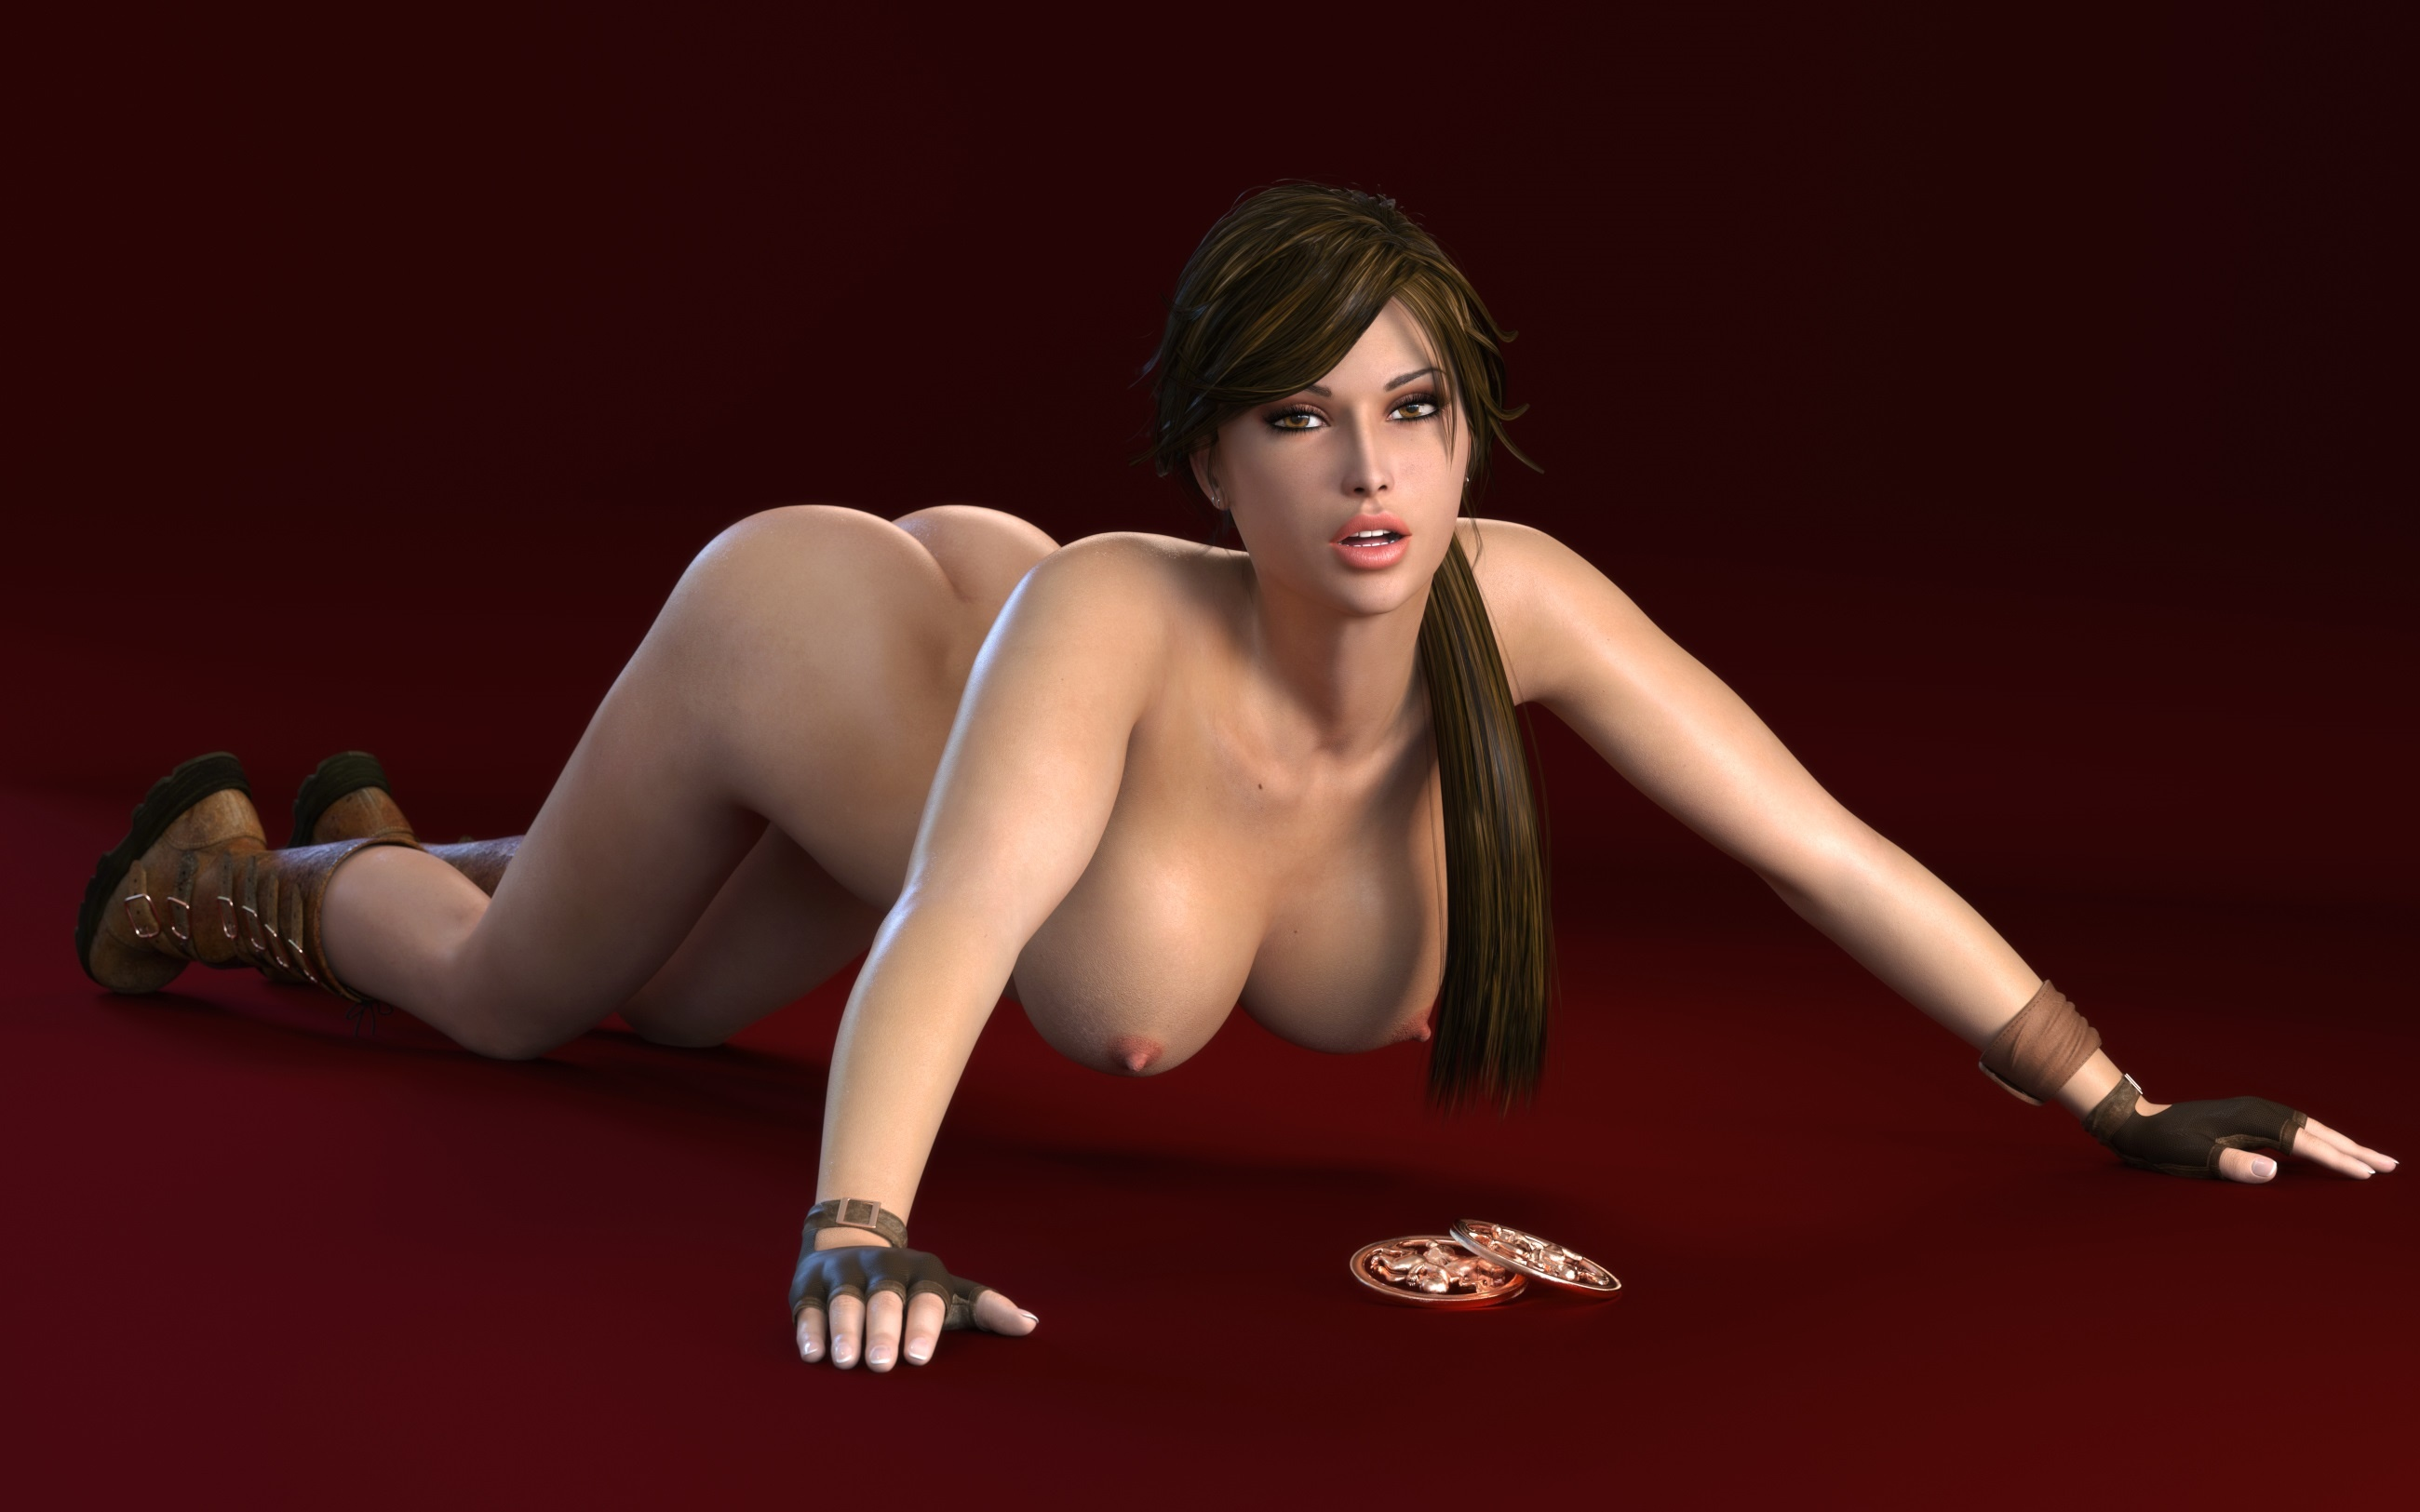 Have cartoon porn nude raider lara craft for